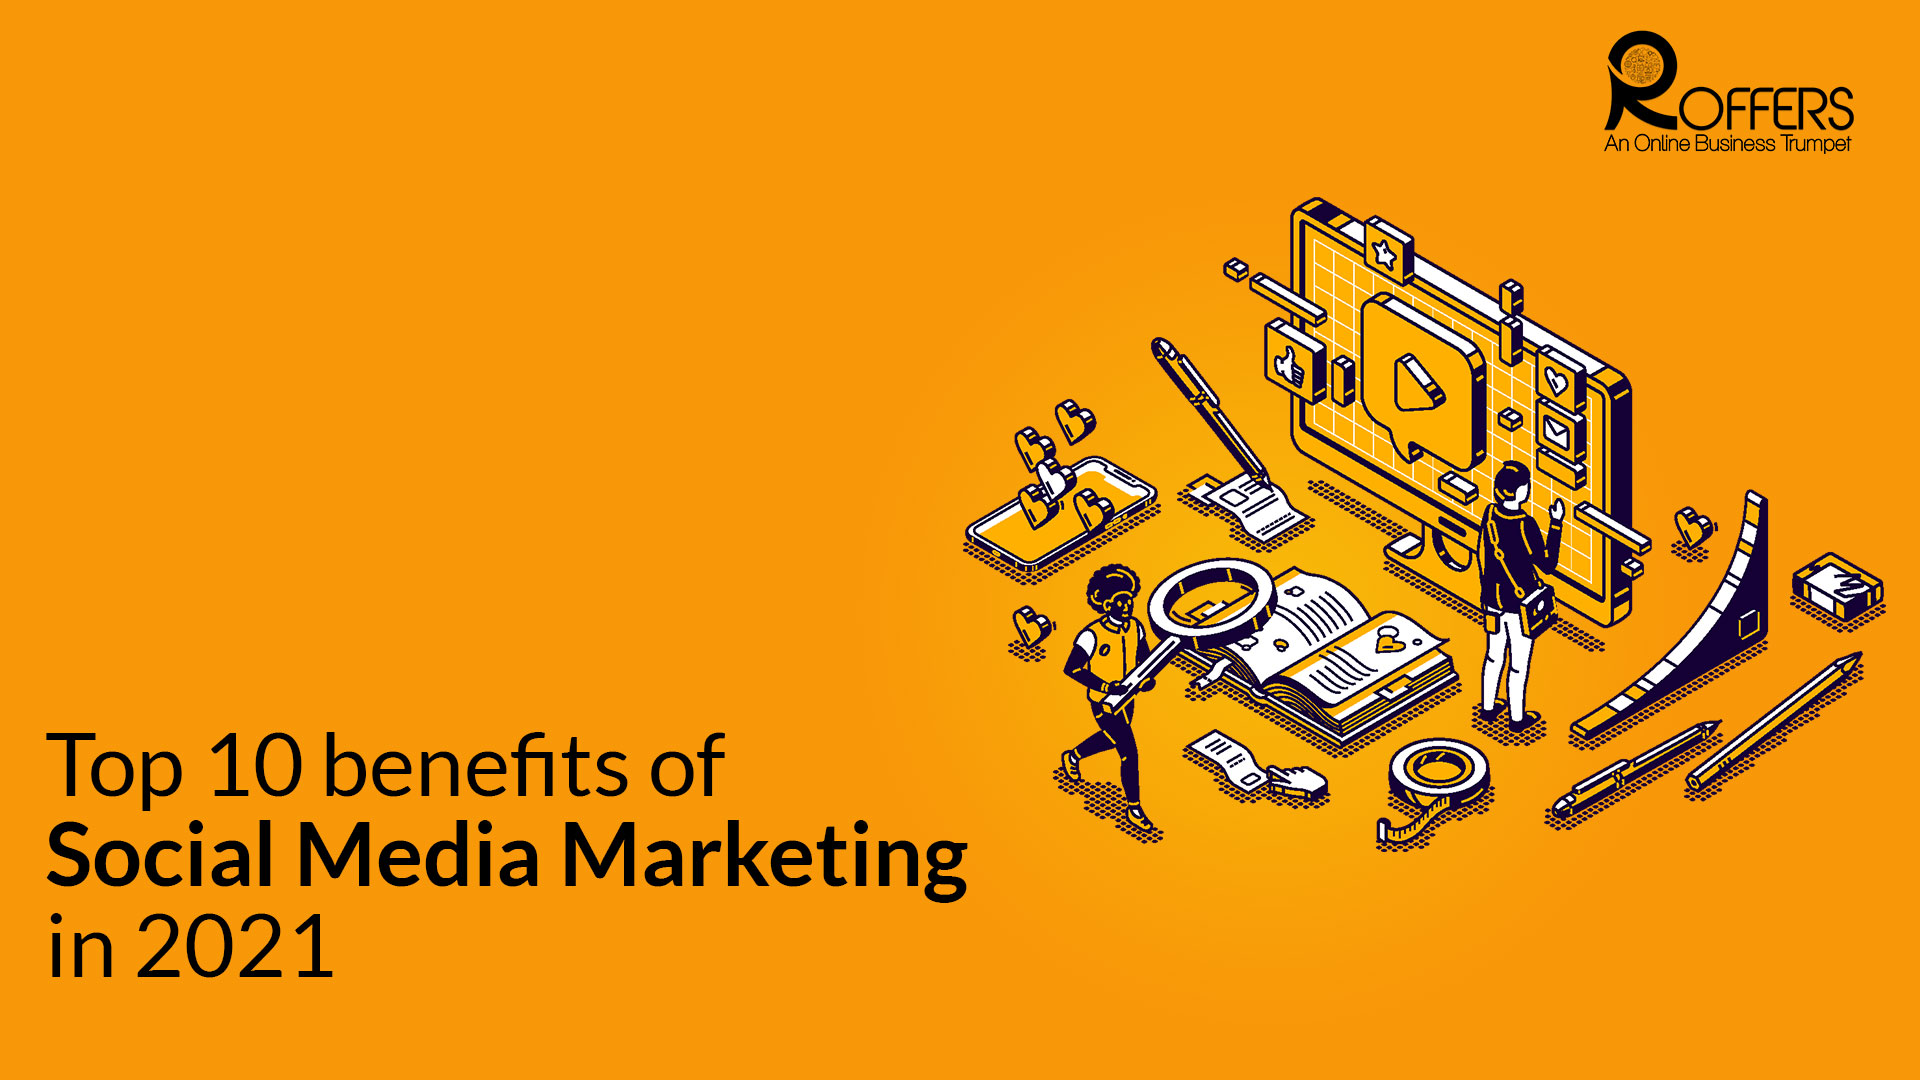 benefits of social media marketing in 2021